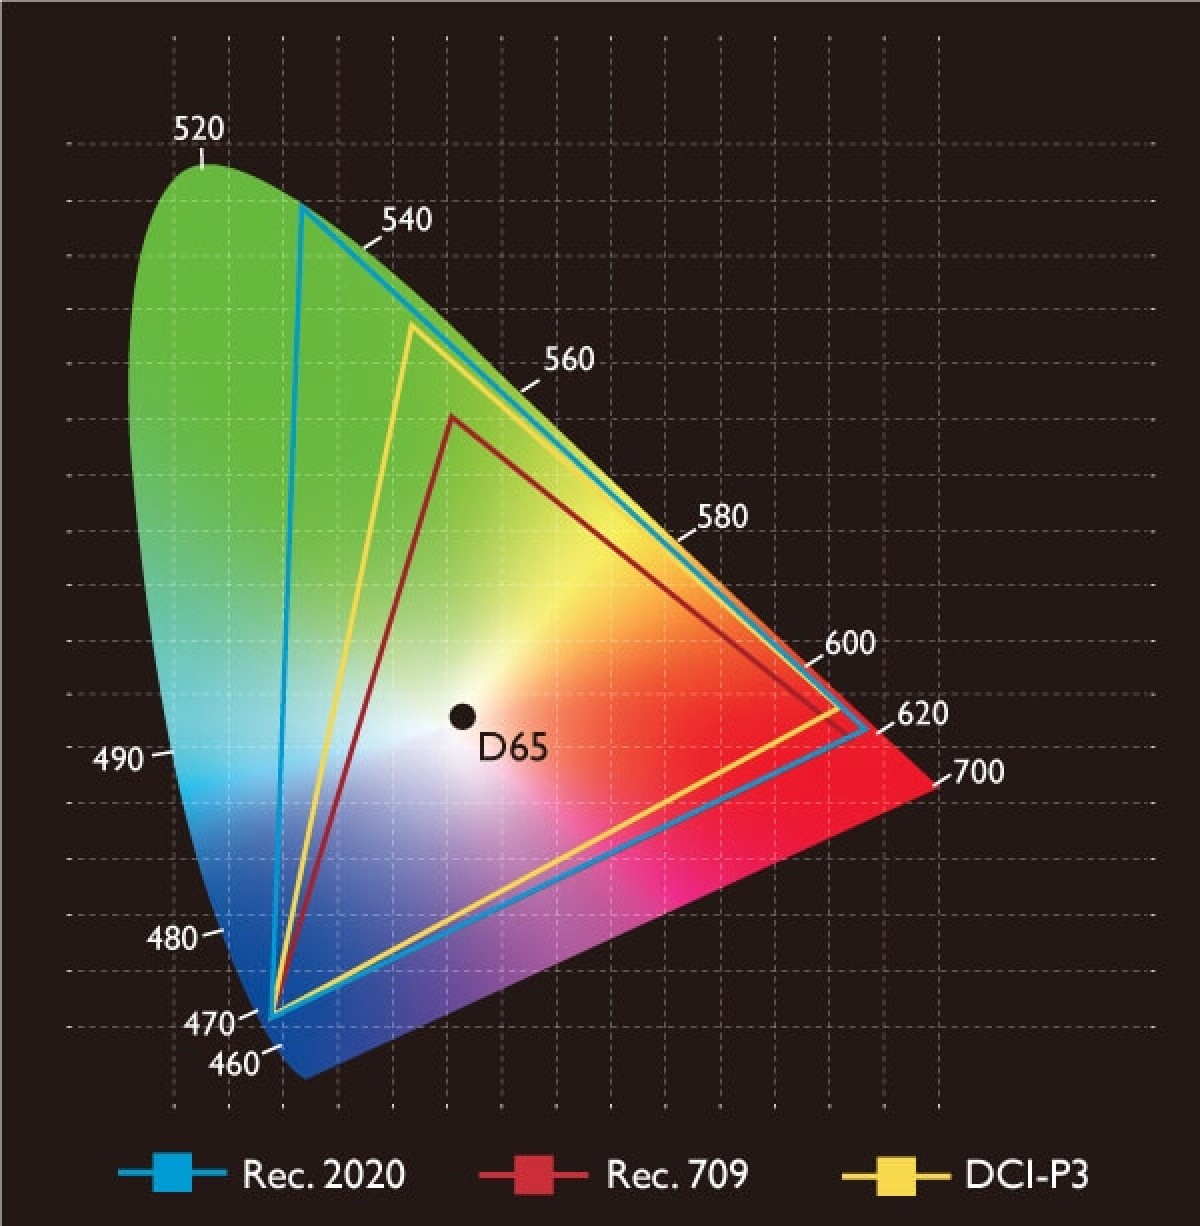 Rec. 709 color space as compared to Rec. 2020 and DCI-P3 within the visible color range